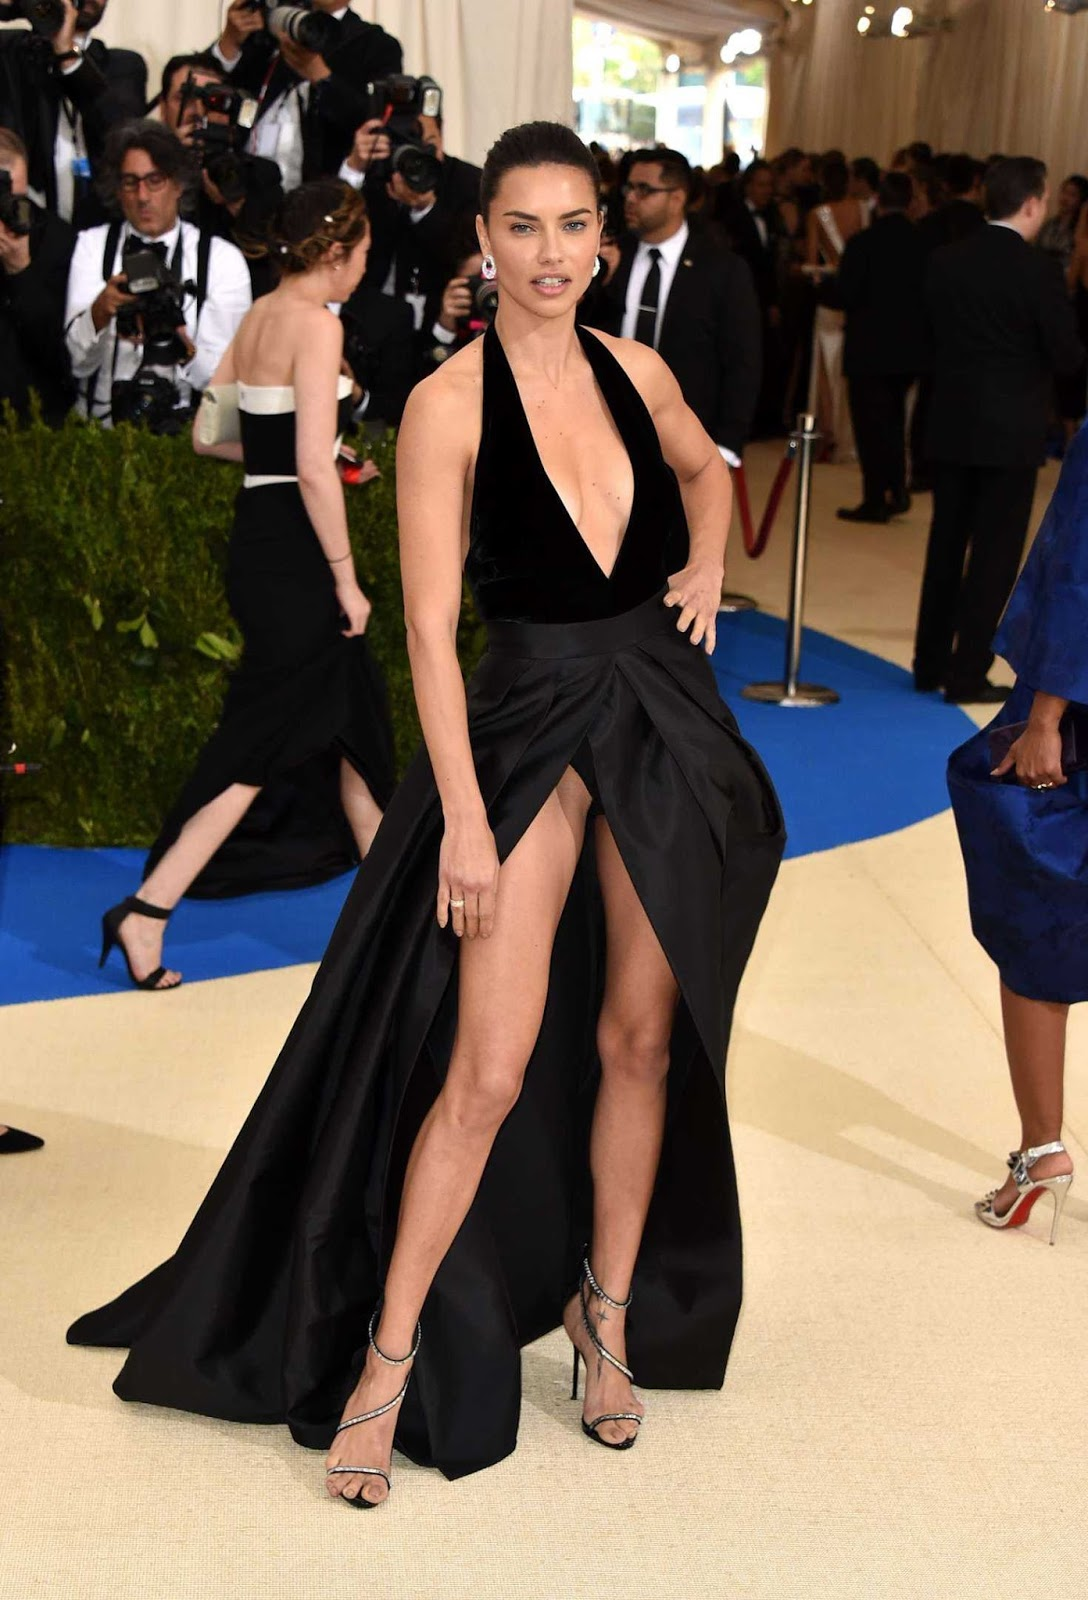 Adriana Lima has an upskirt moment at the 2017 Met Gala